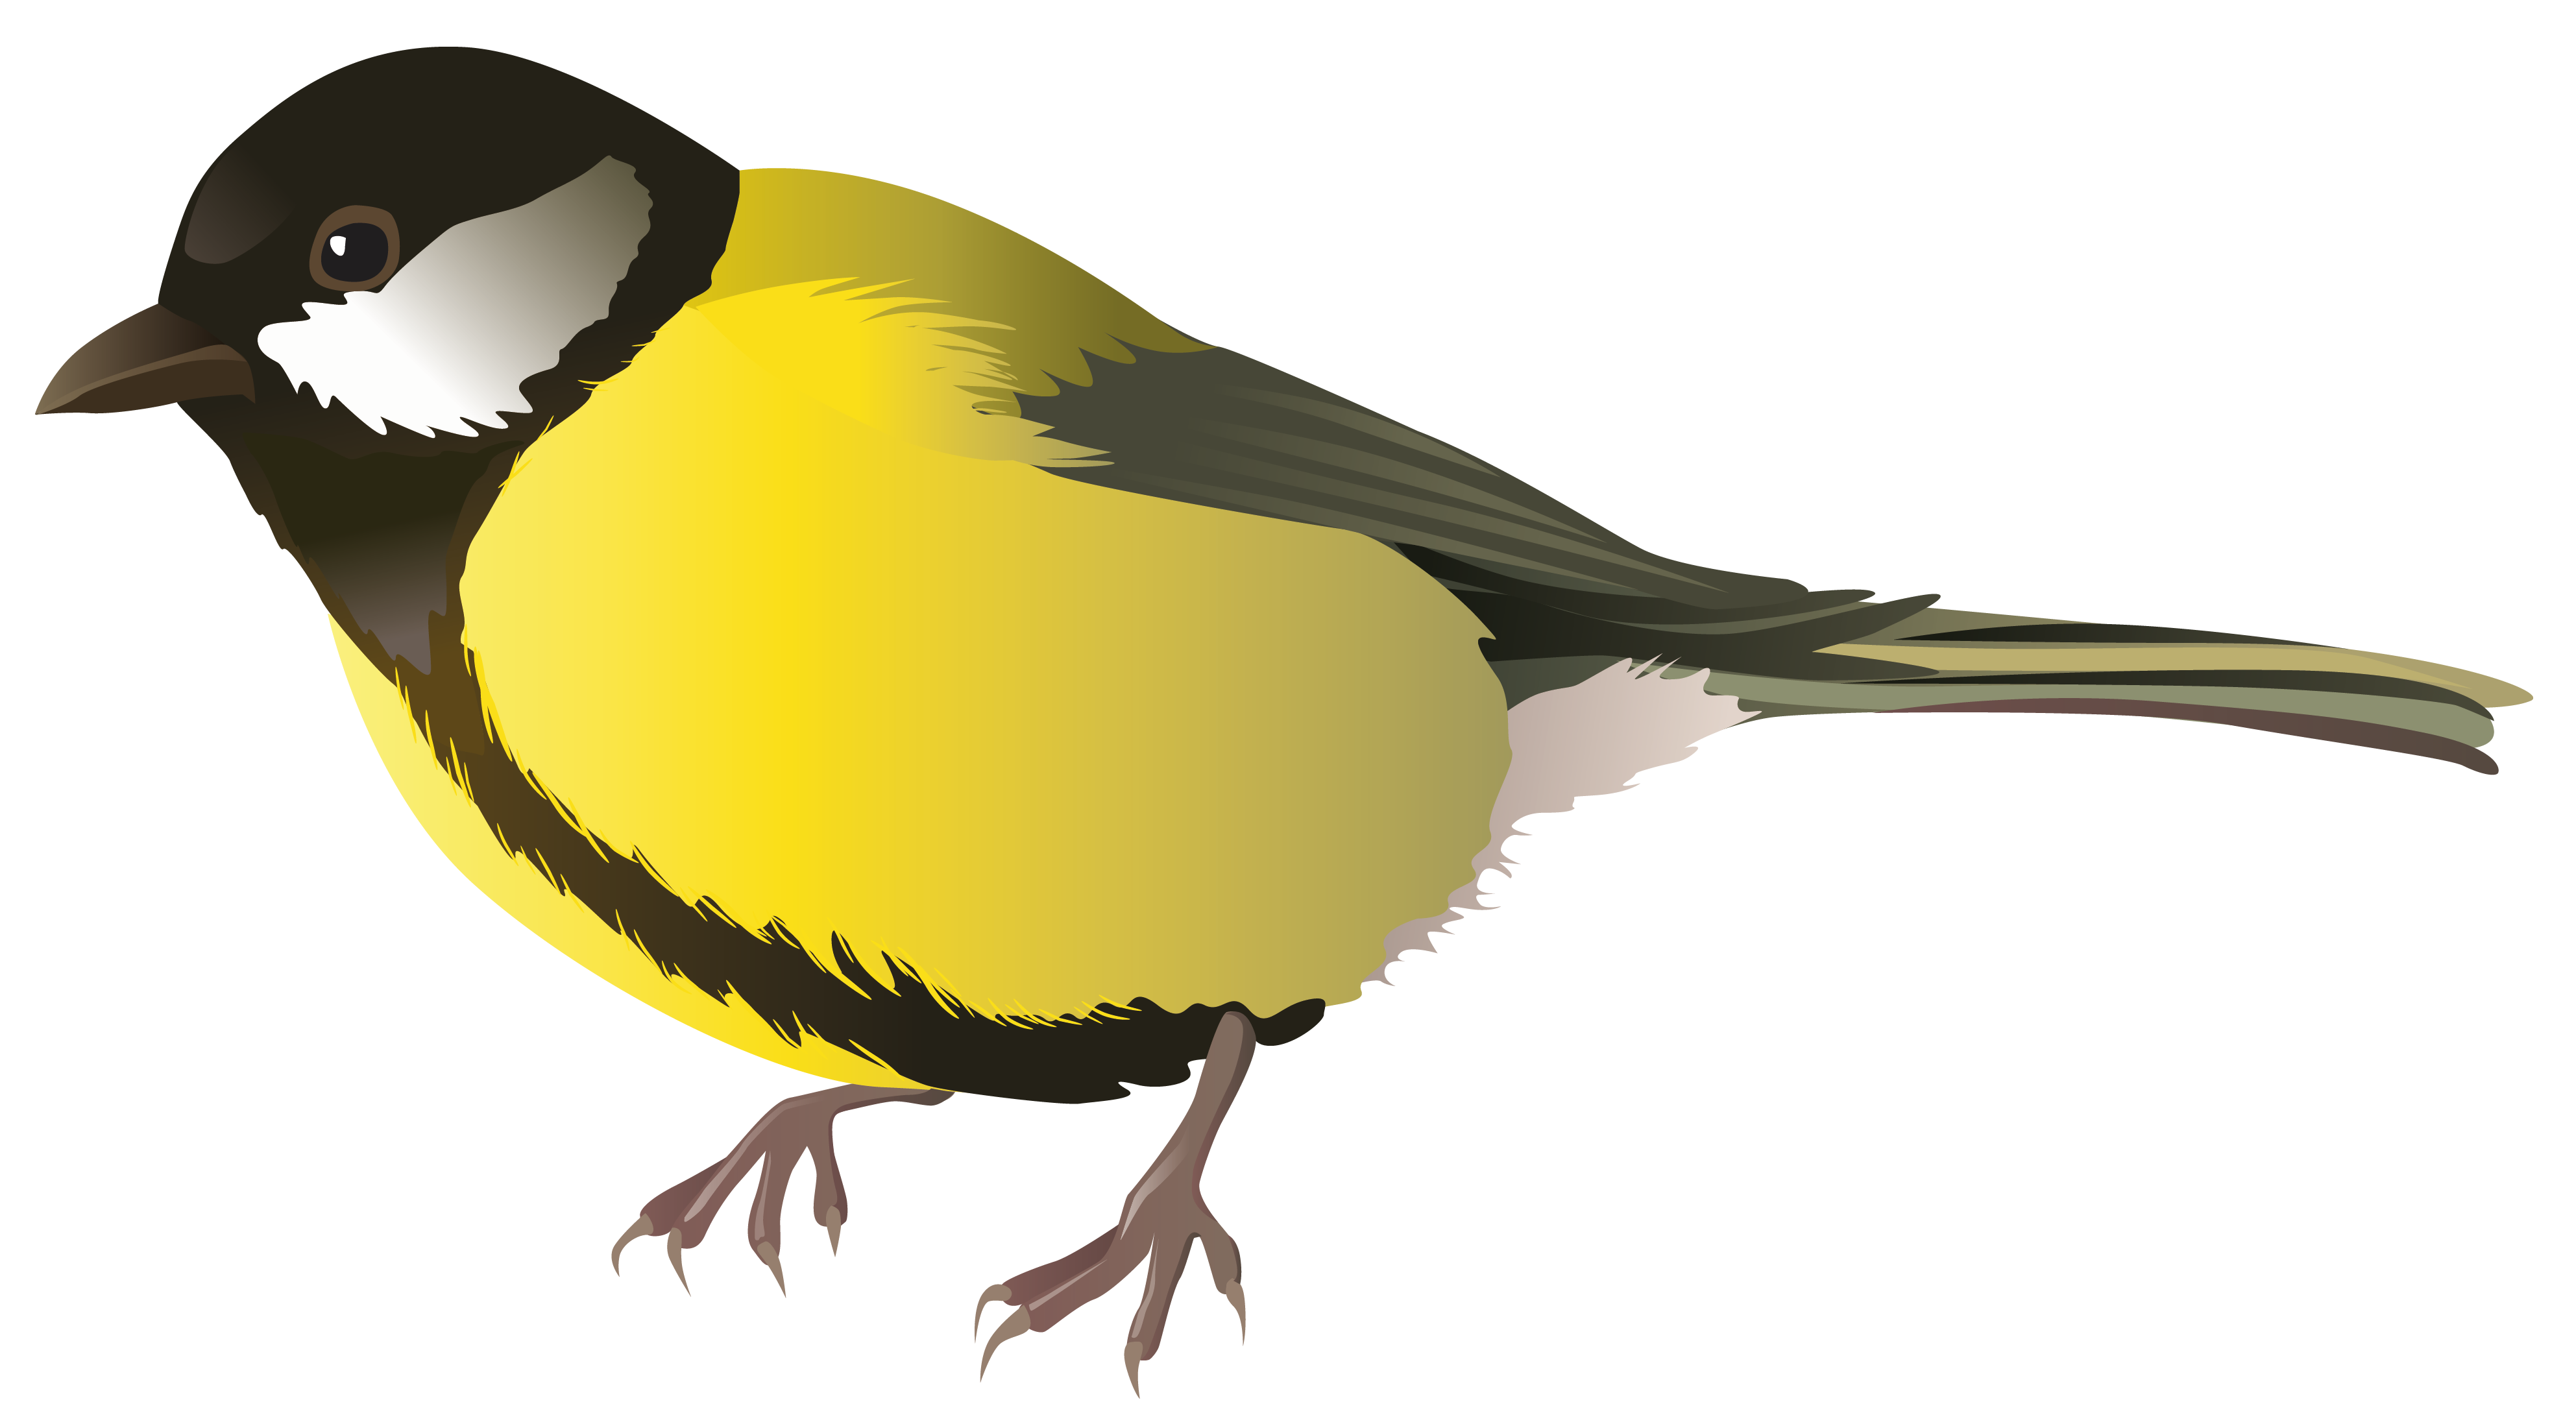 3970x2178 Birds Png Images Free Download, Birds Png